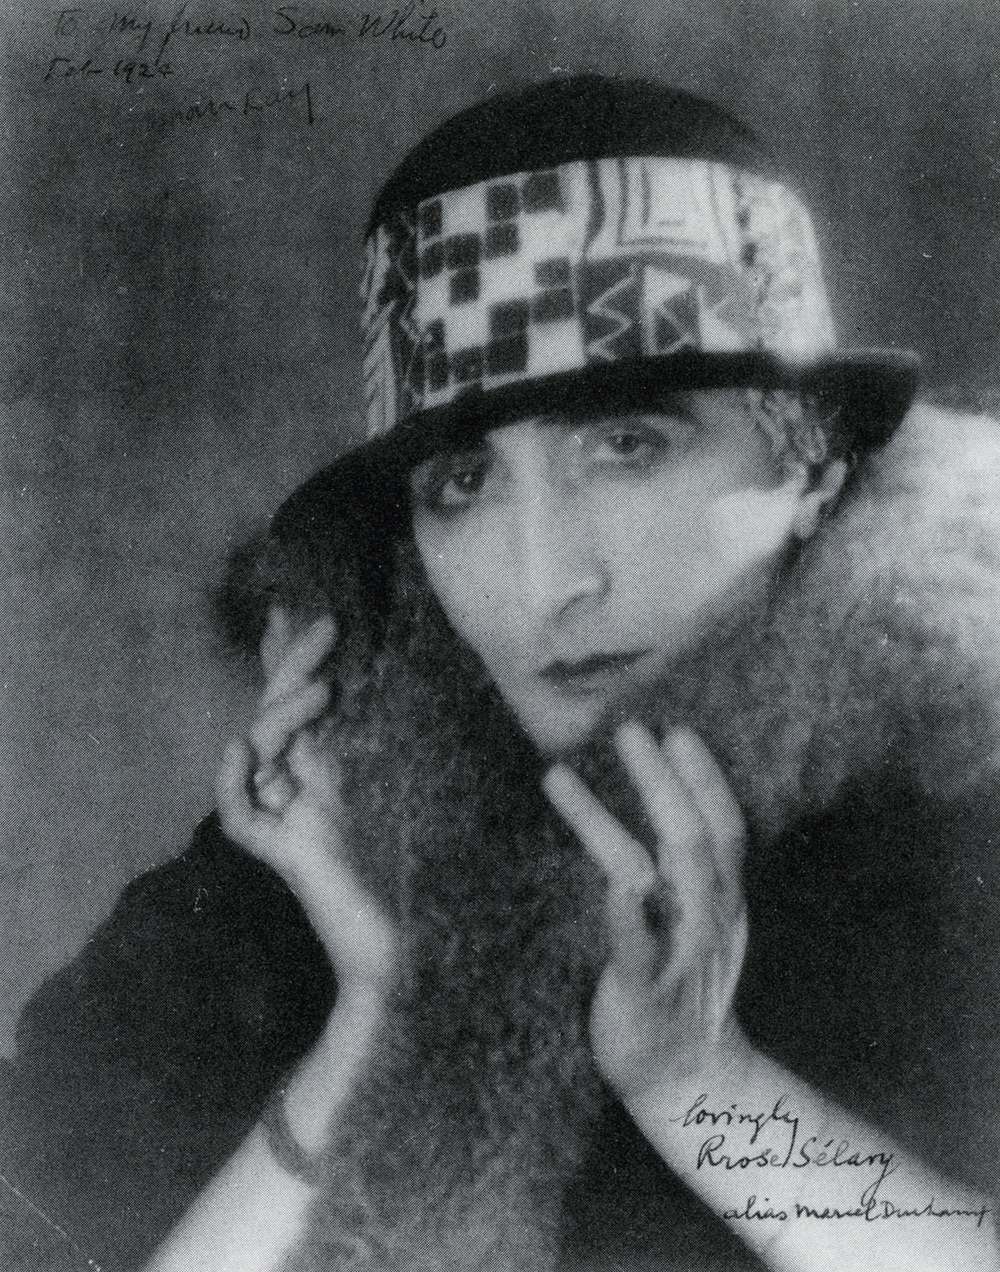 Marcel Duchamp in drag as Rrose Selavy